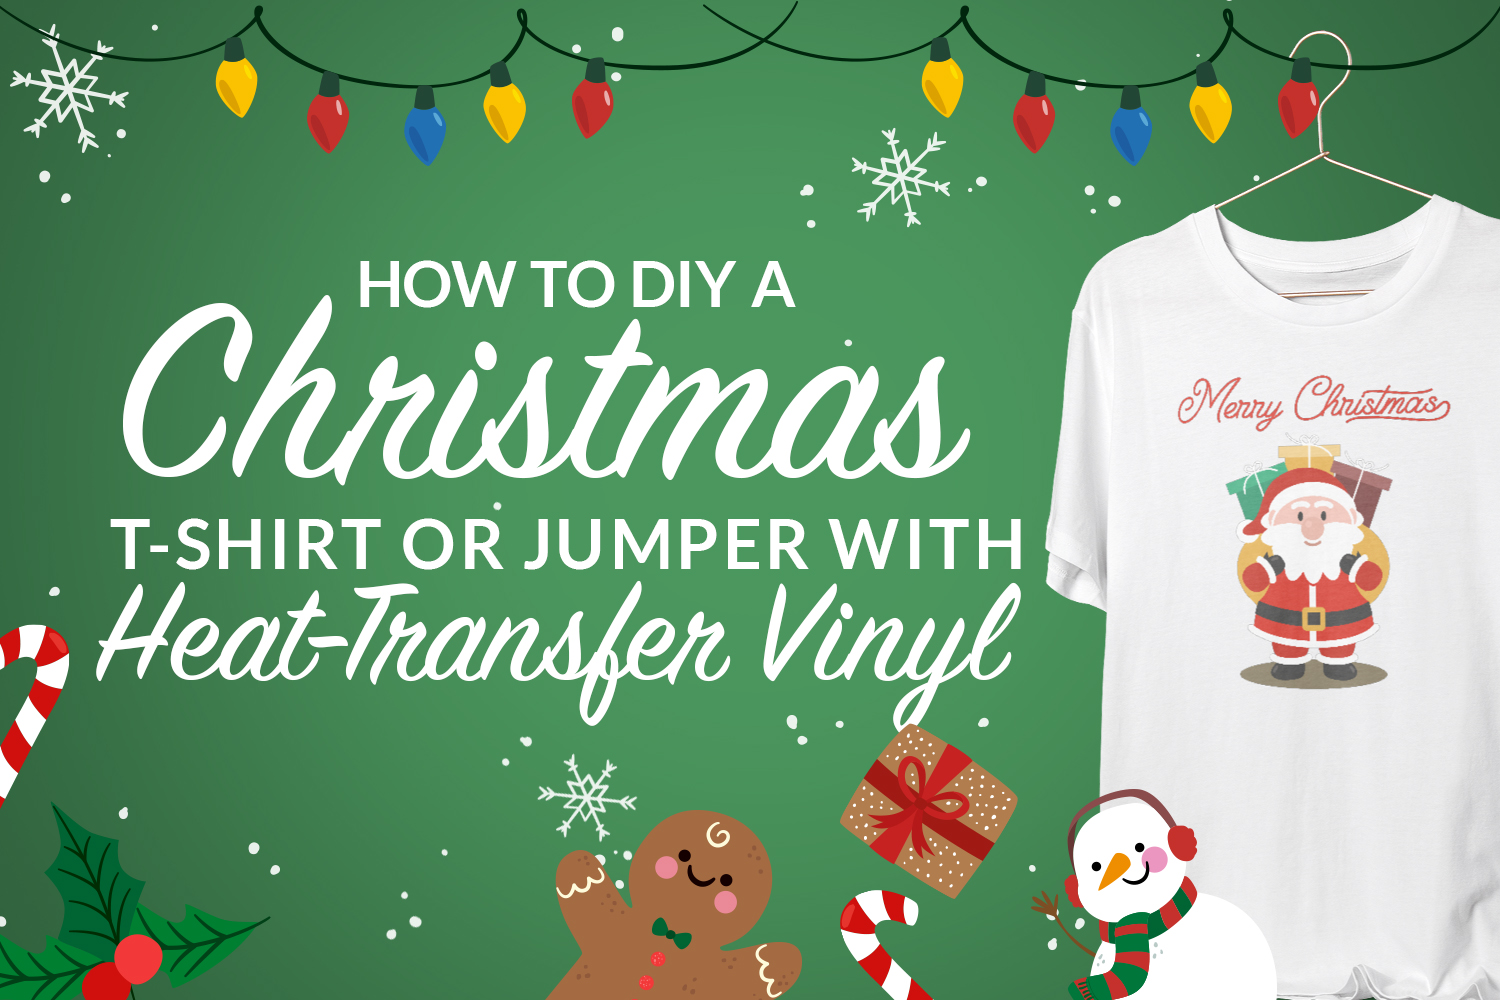 How To DIY A Christmas T-shirt Or Jumper With Heat-Transfer Vinyl